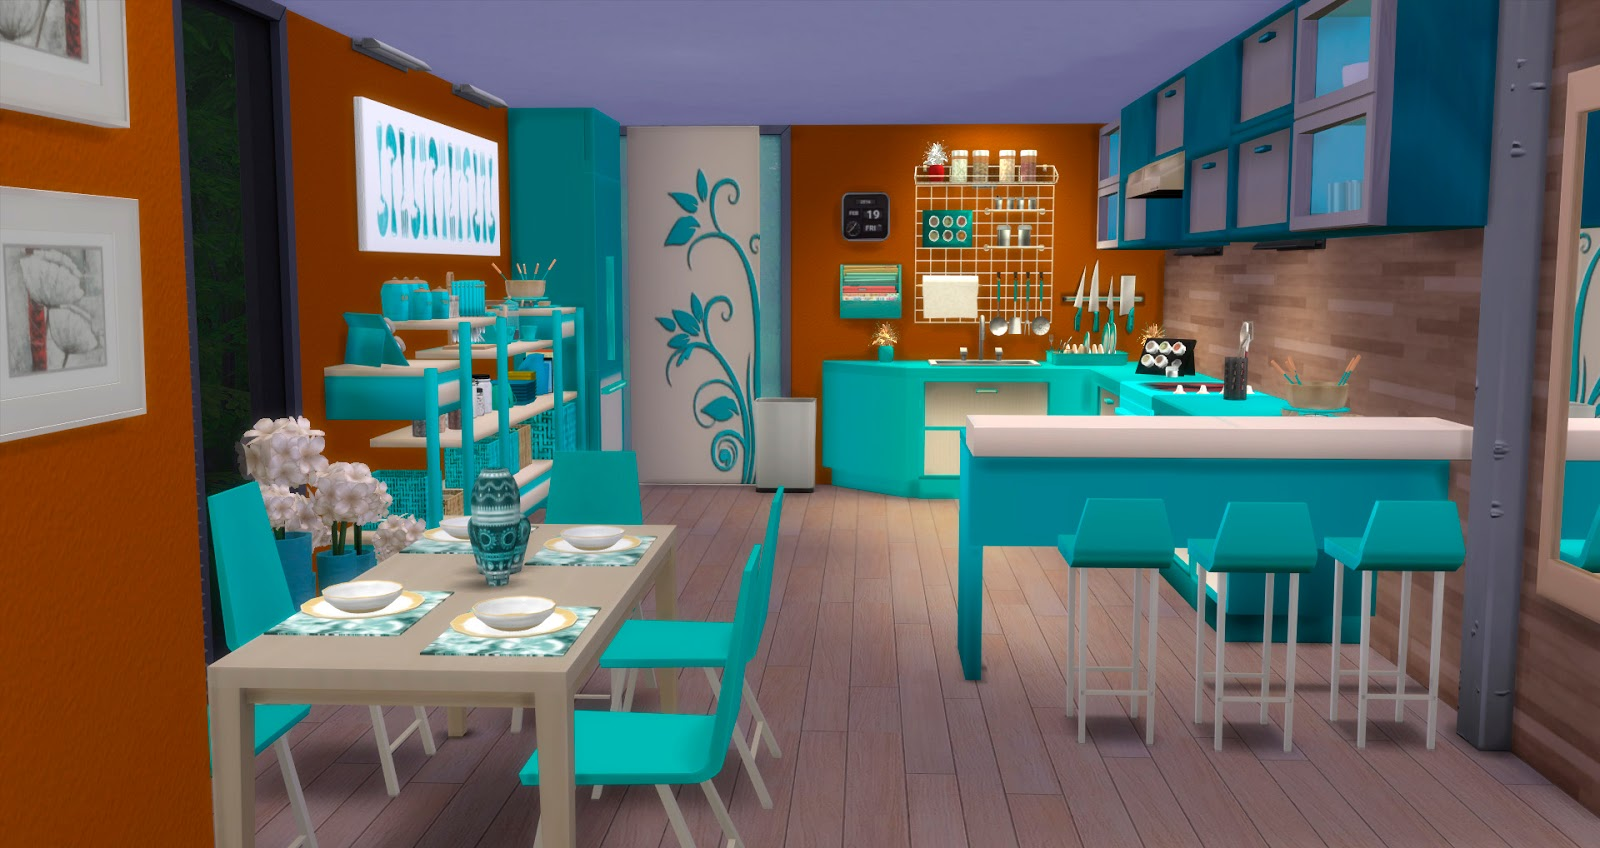 Kitchen and dining Altea by Mary Jimnez by pqSims4